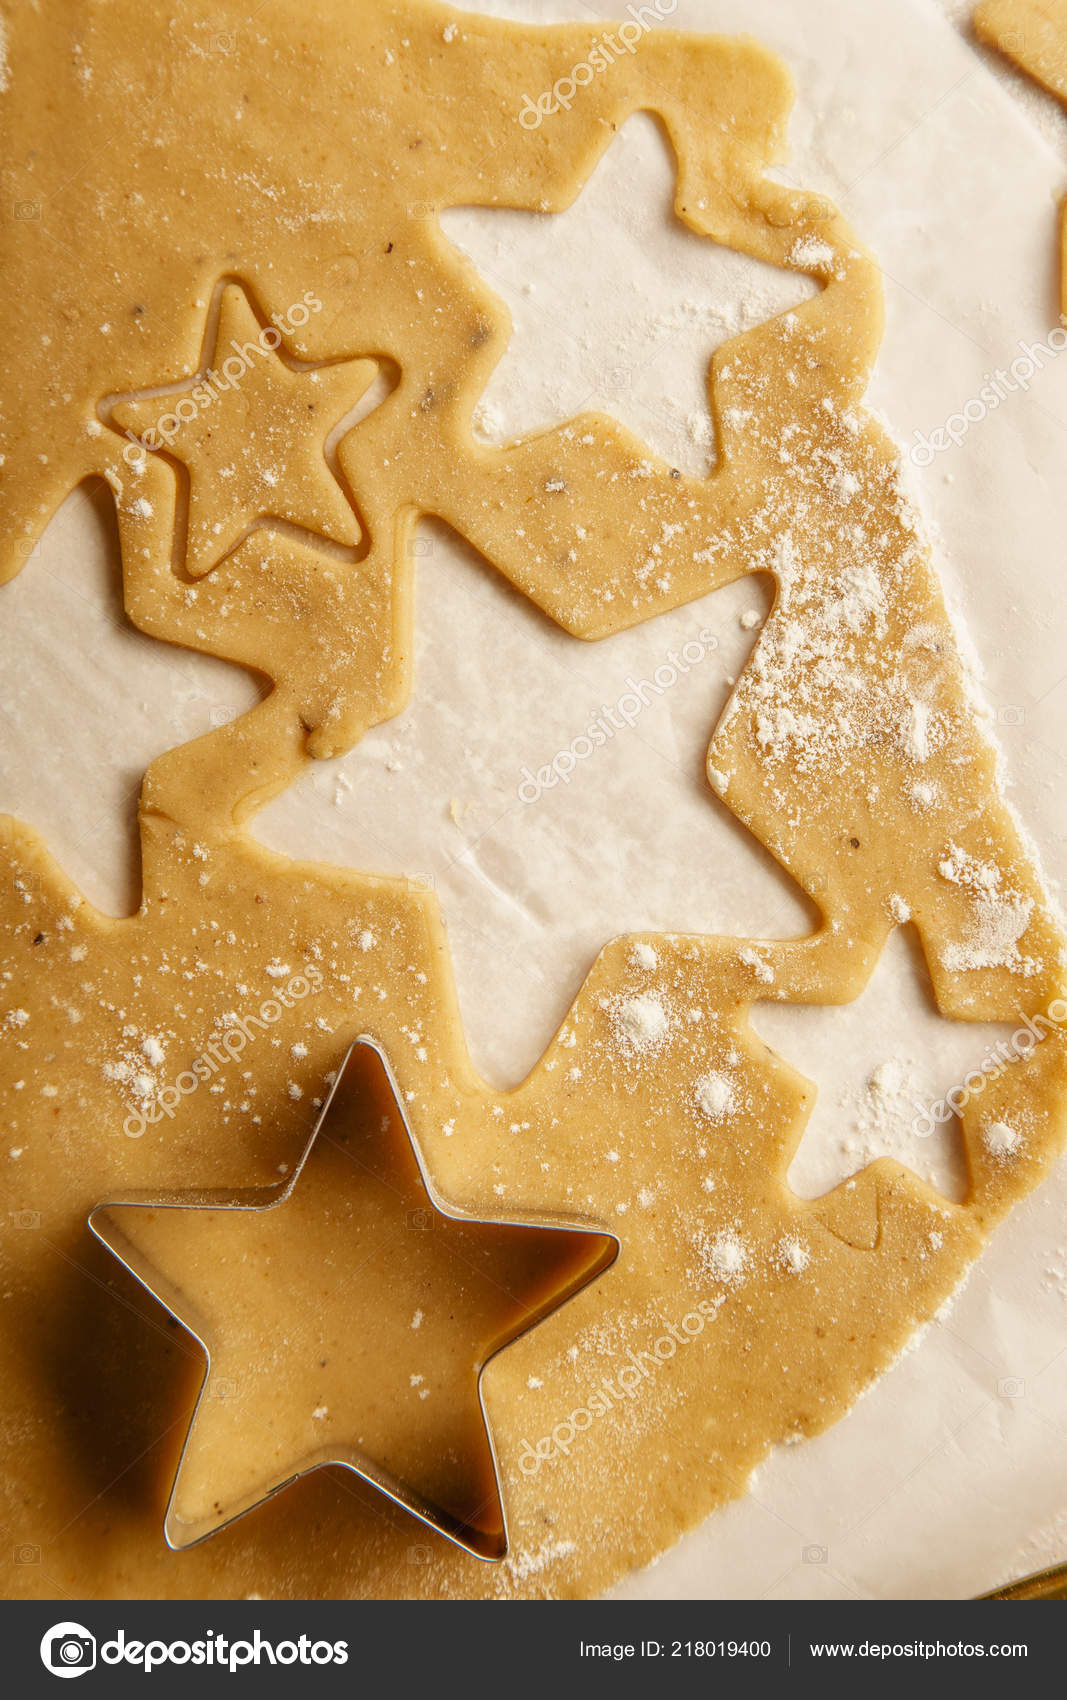 Cooking Swedish Ginger Cookies Star Shapes Christmas Concept Stock